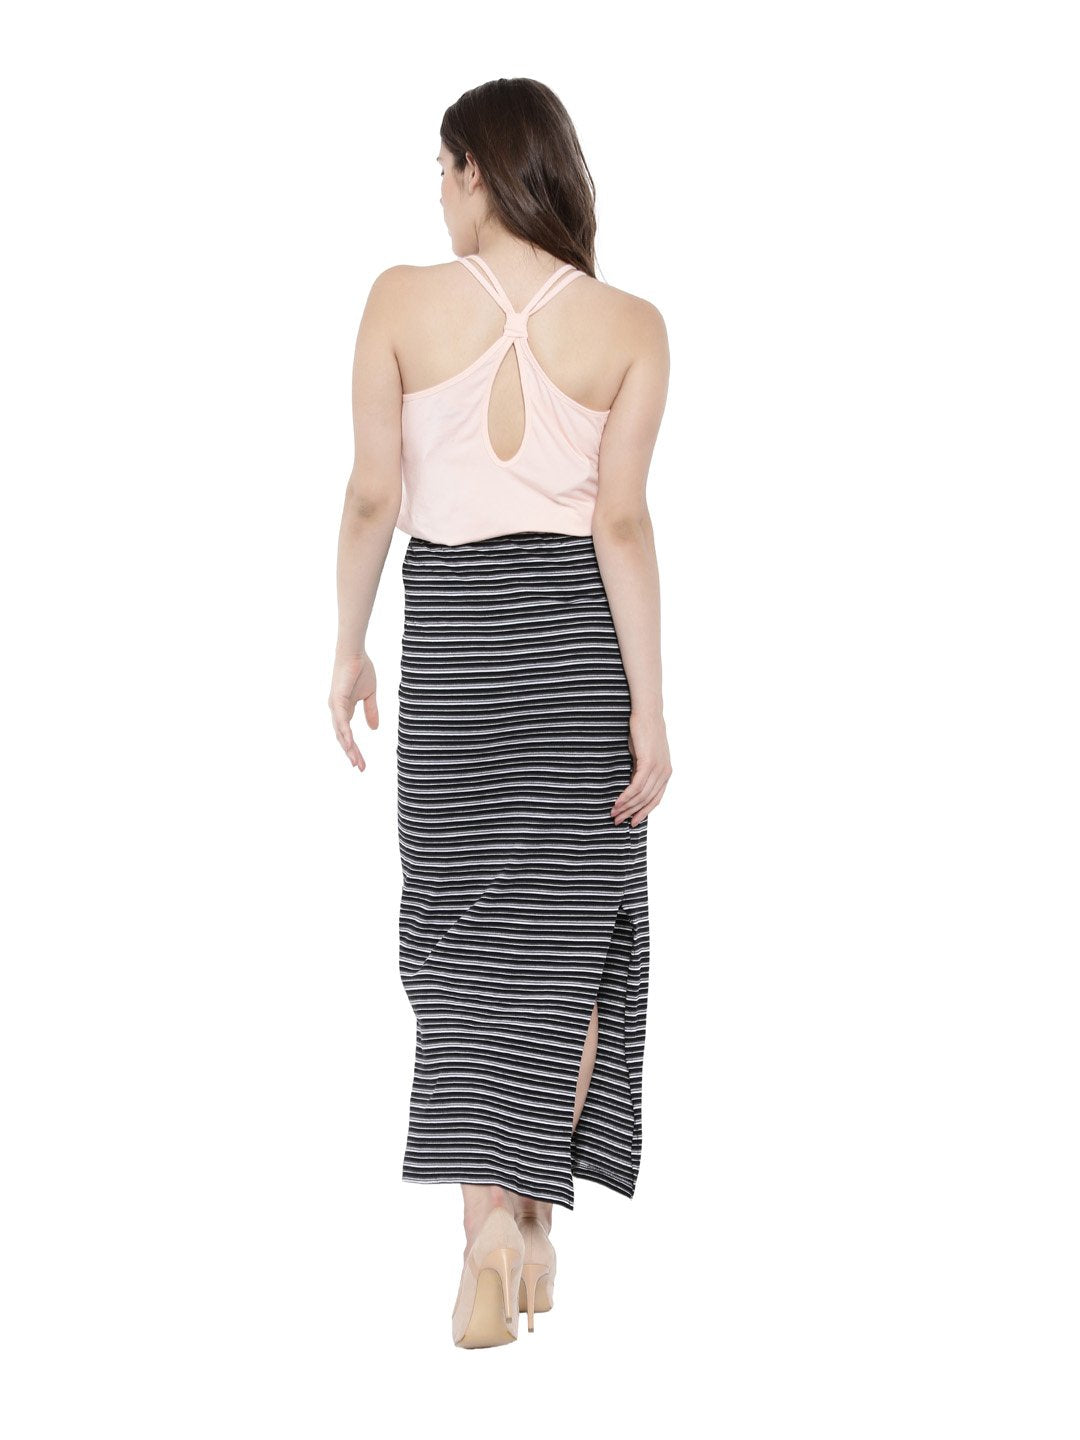 Women's Bamboo Relaxed Fit Knotted Back Top - Summer Blush